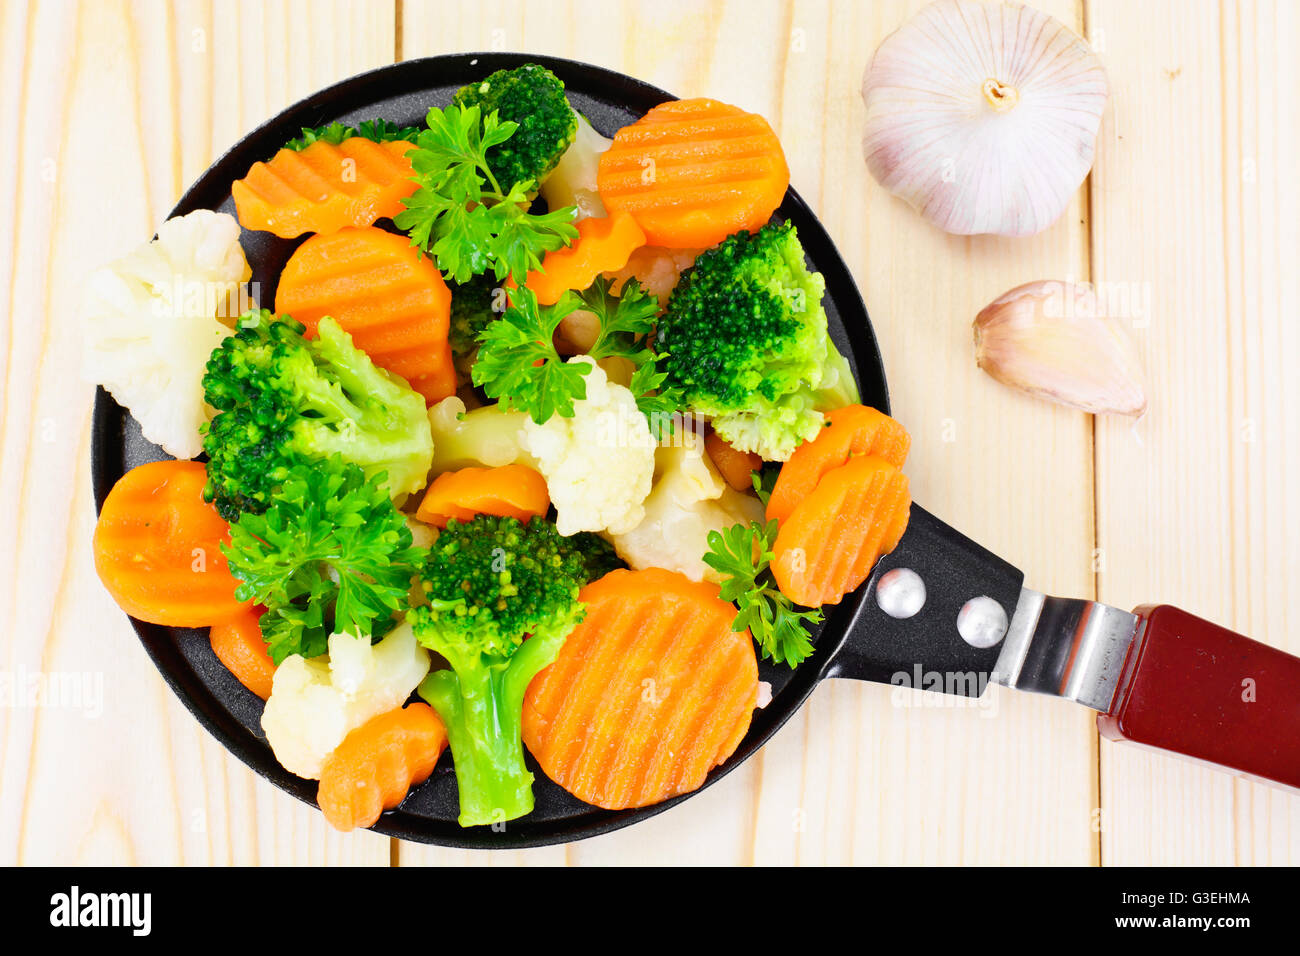 Steamed Vegetables Potatoes Carrots Cauliflower Broccoli Stock Photo Alamy